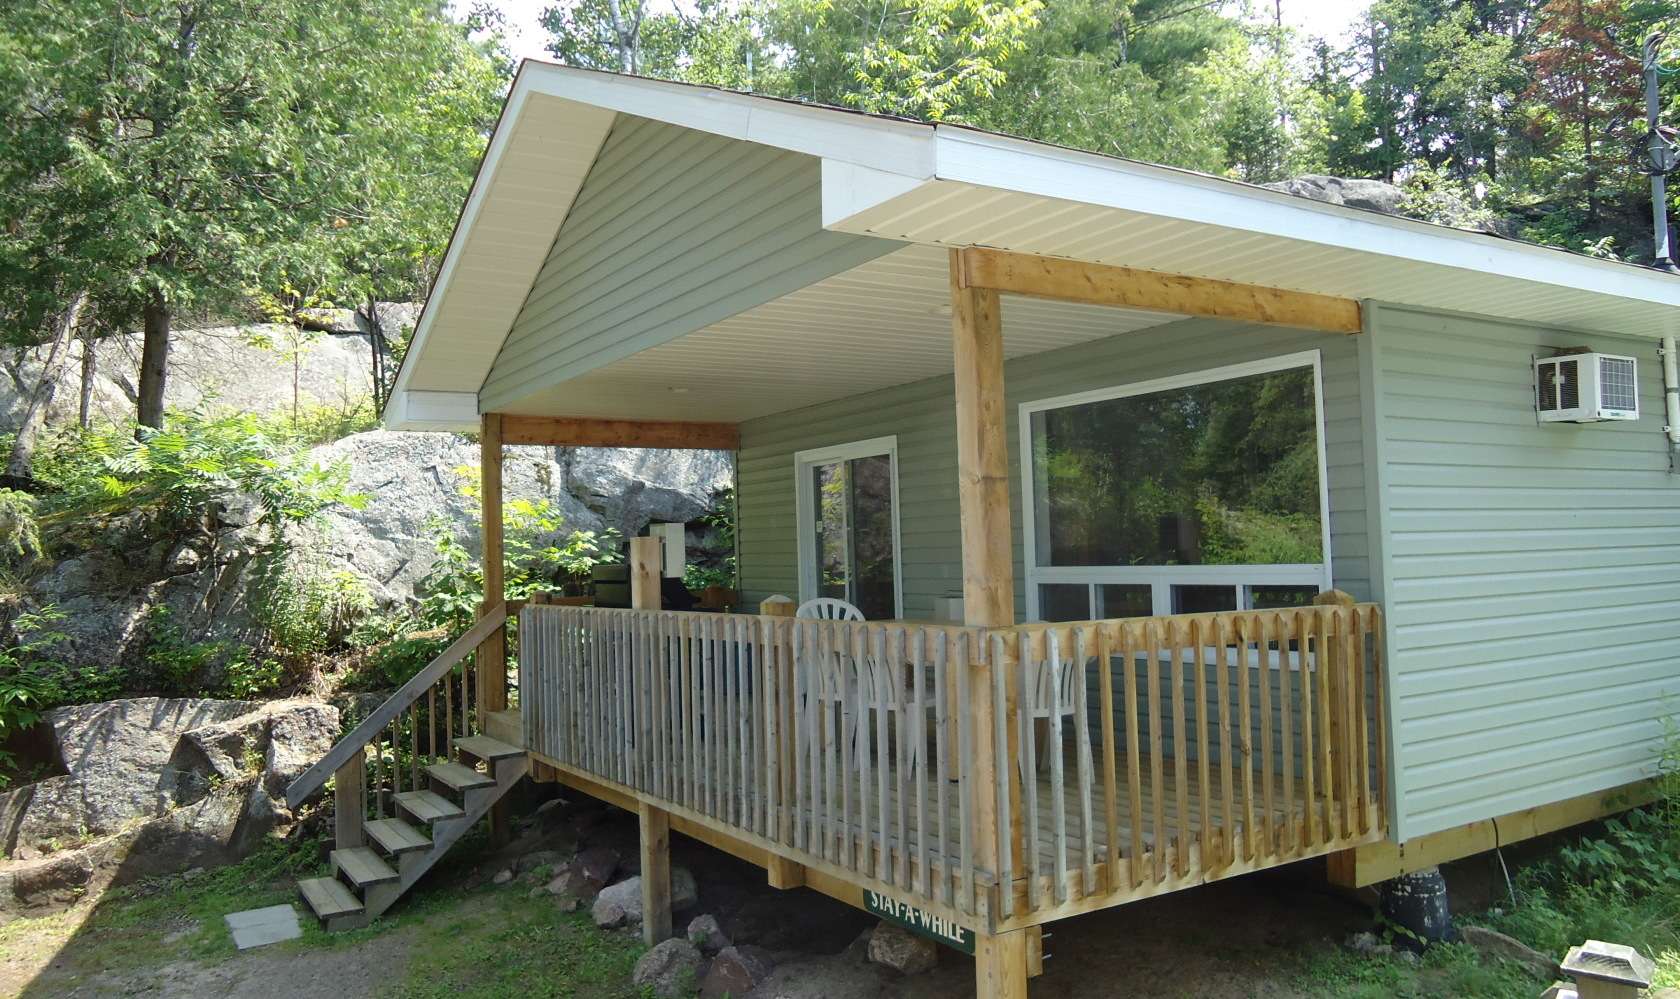 Northern ontario fishing lodges cottage rentals autos post for Ontario fishing lodges and resorts